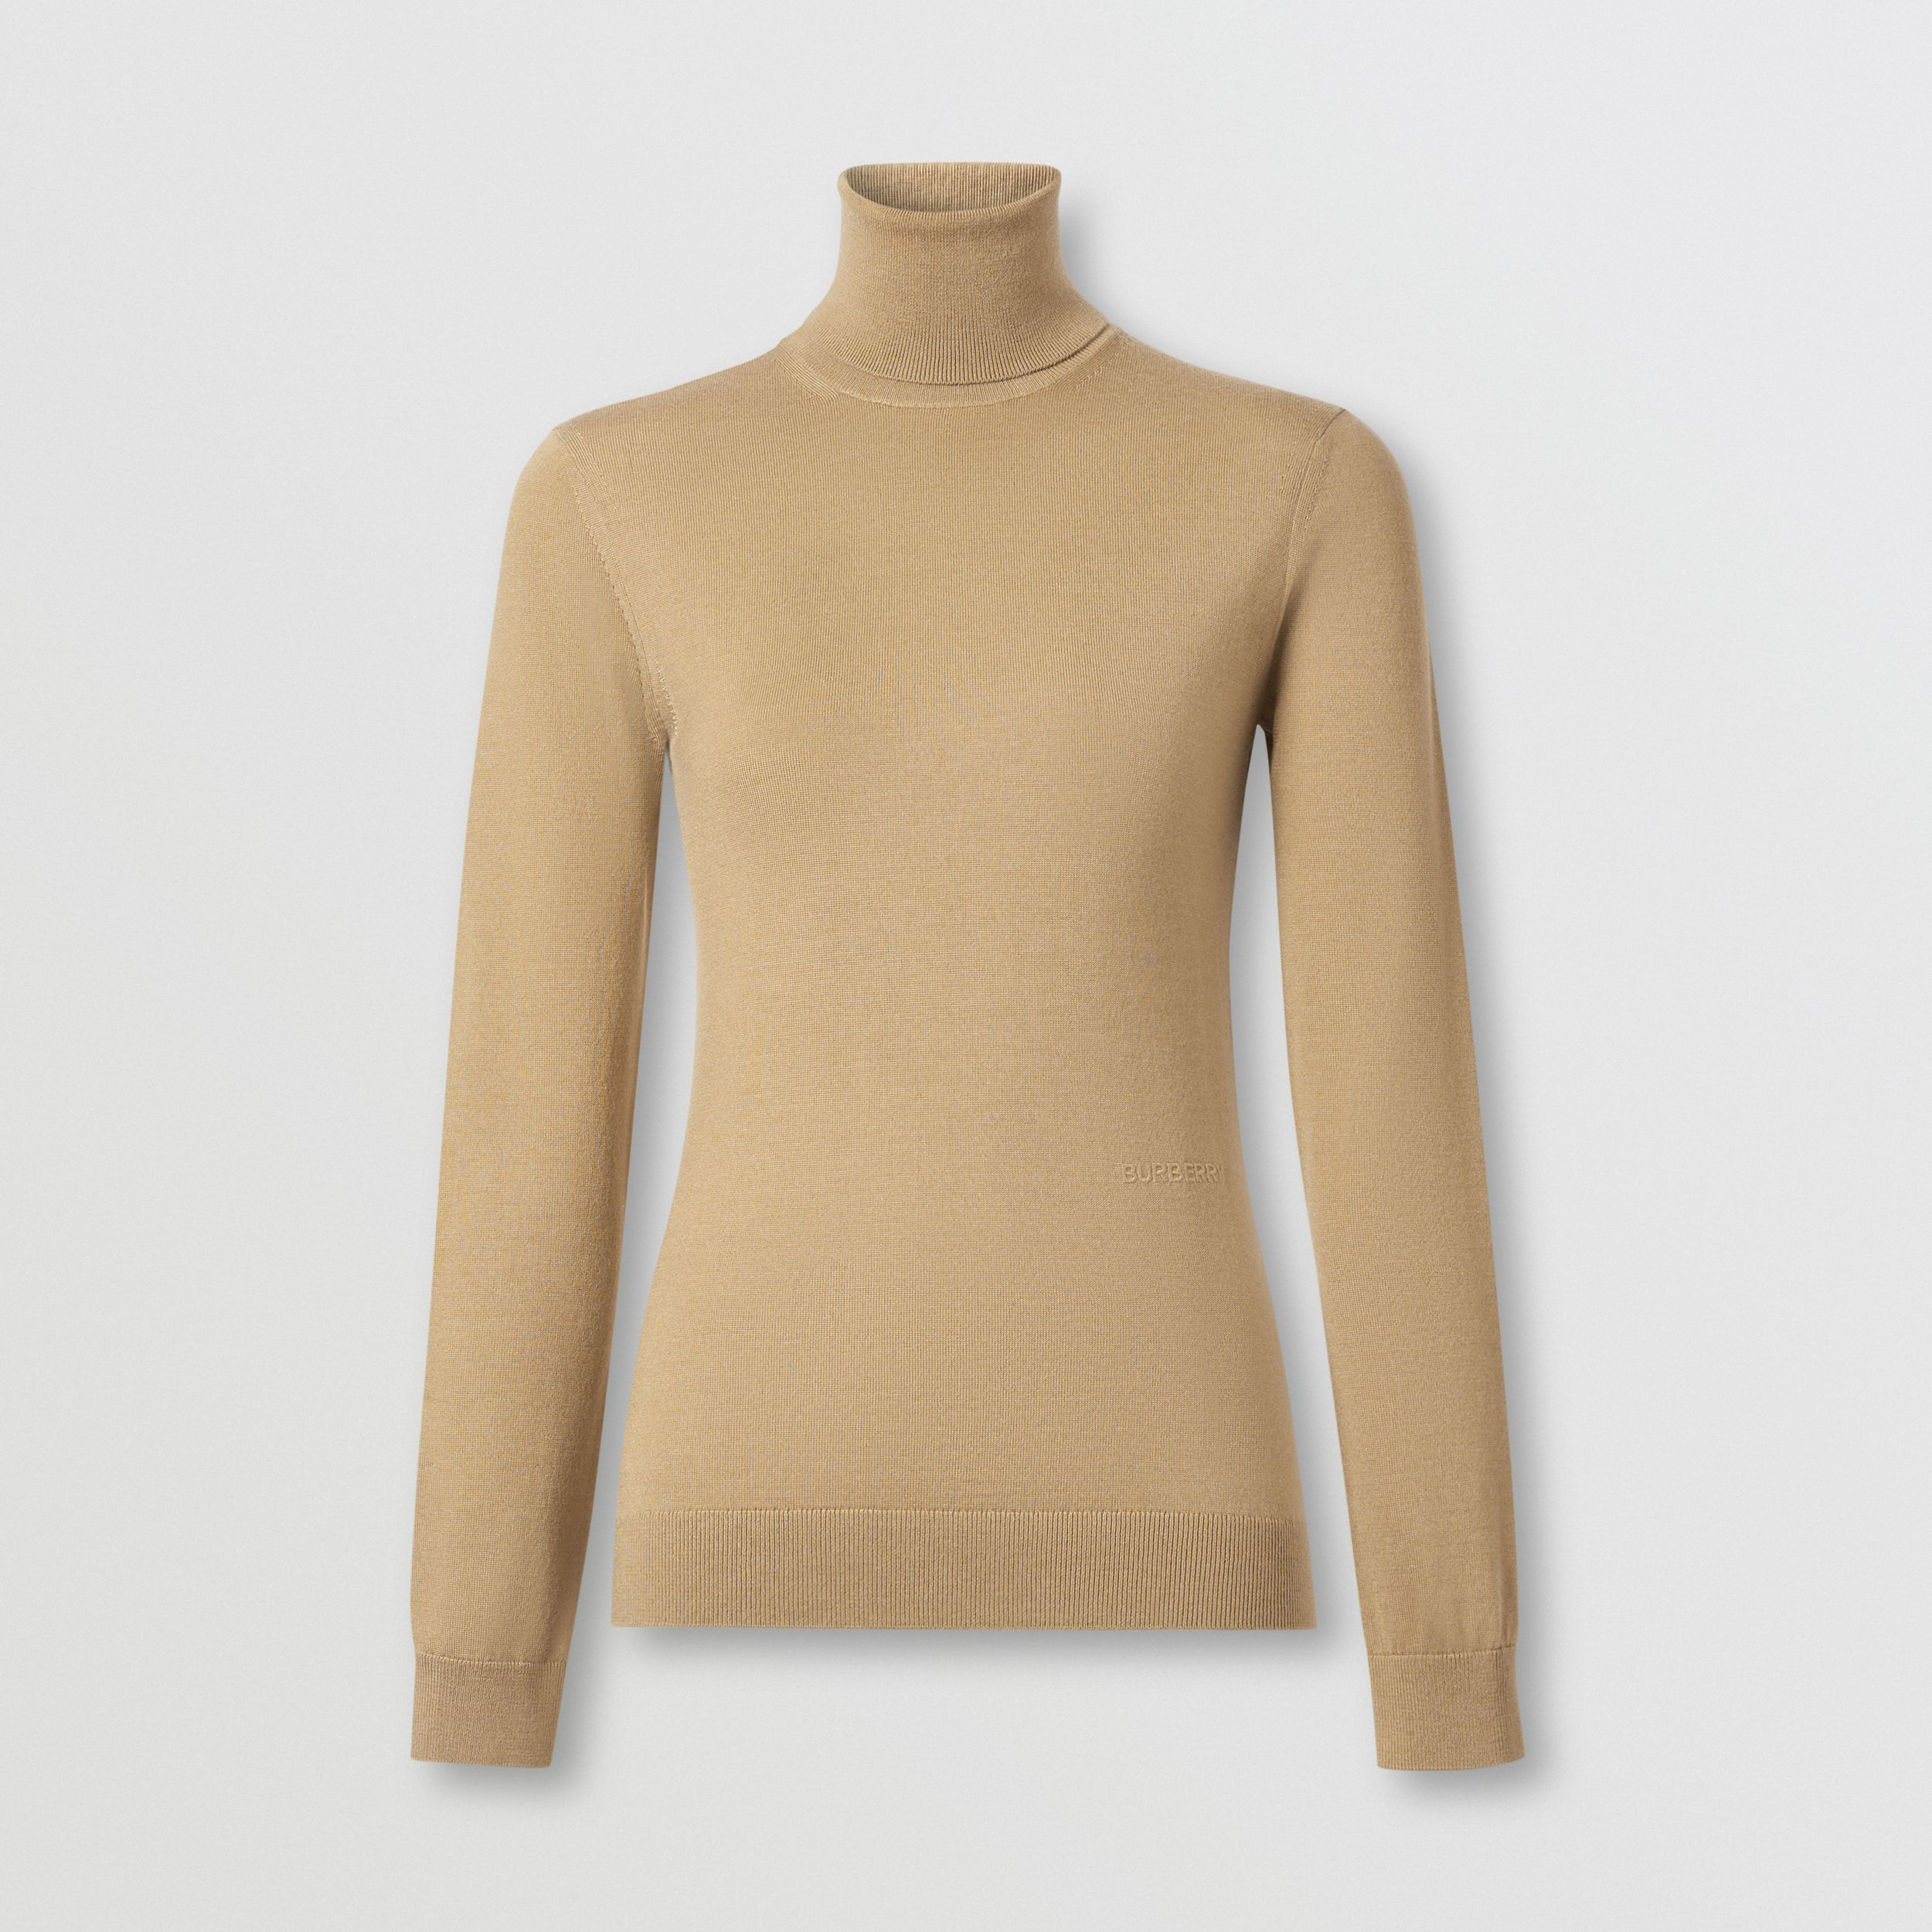 Two-tone Merino Wool Silk Roll-neck Sweater in Camel - Women | Burberry - 4